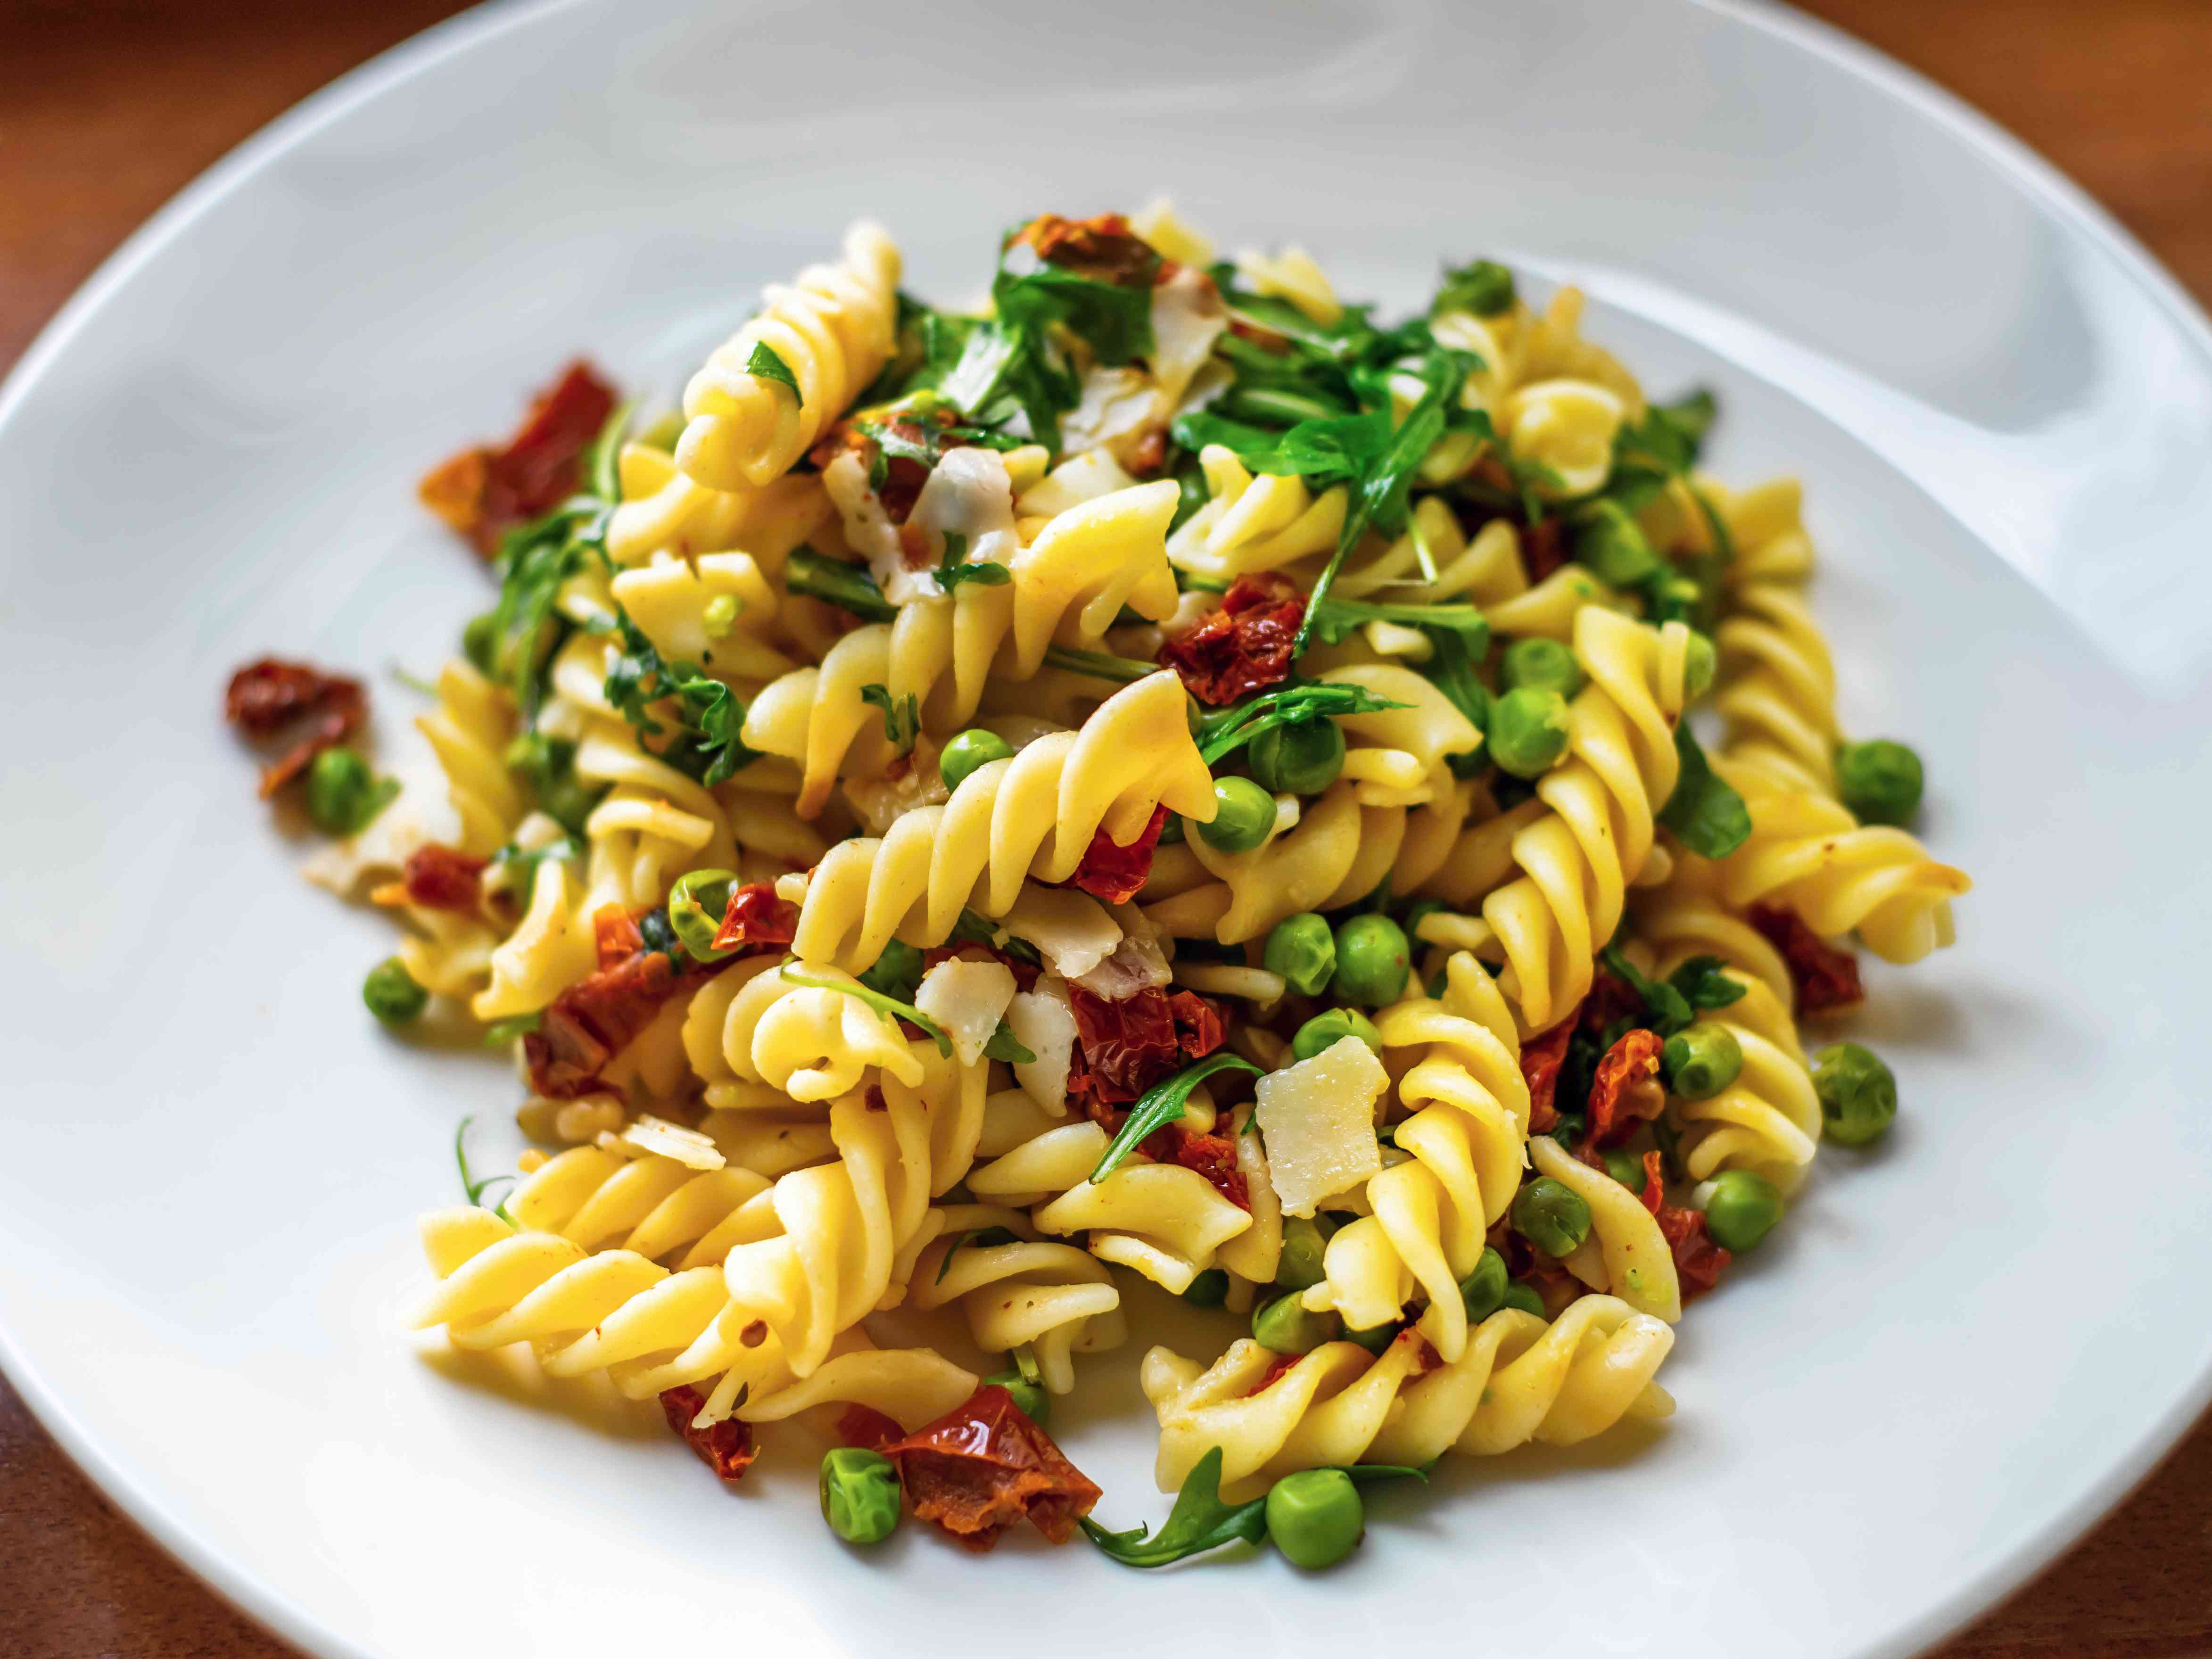 Fusilli pasta with vegetable on plate.